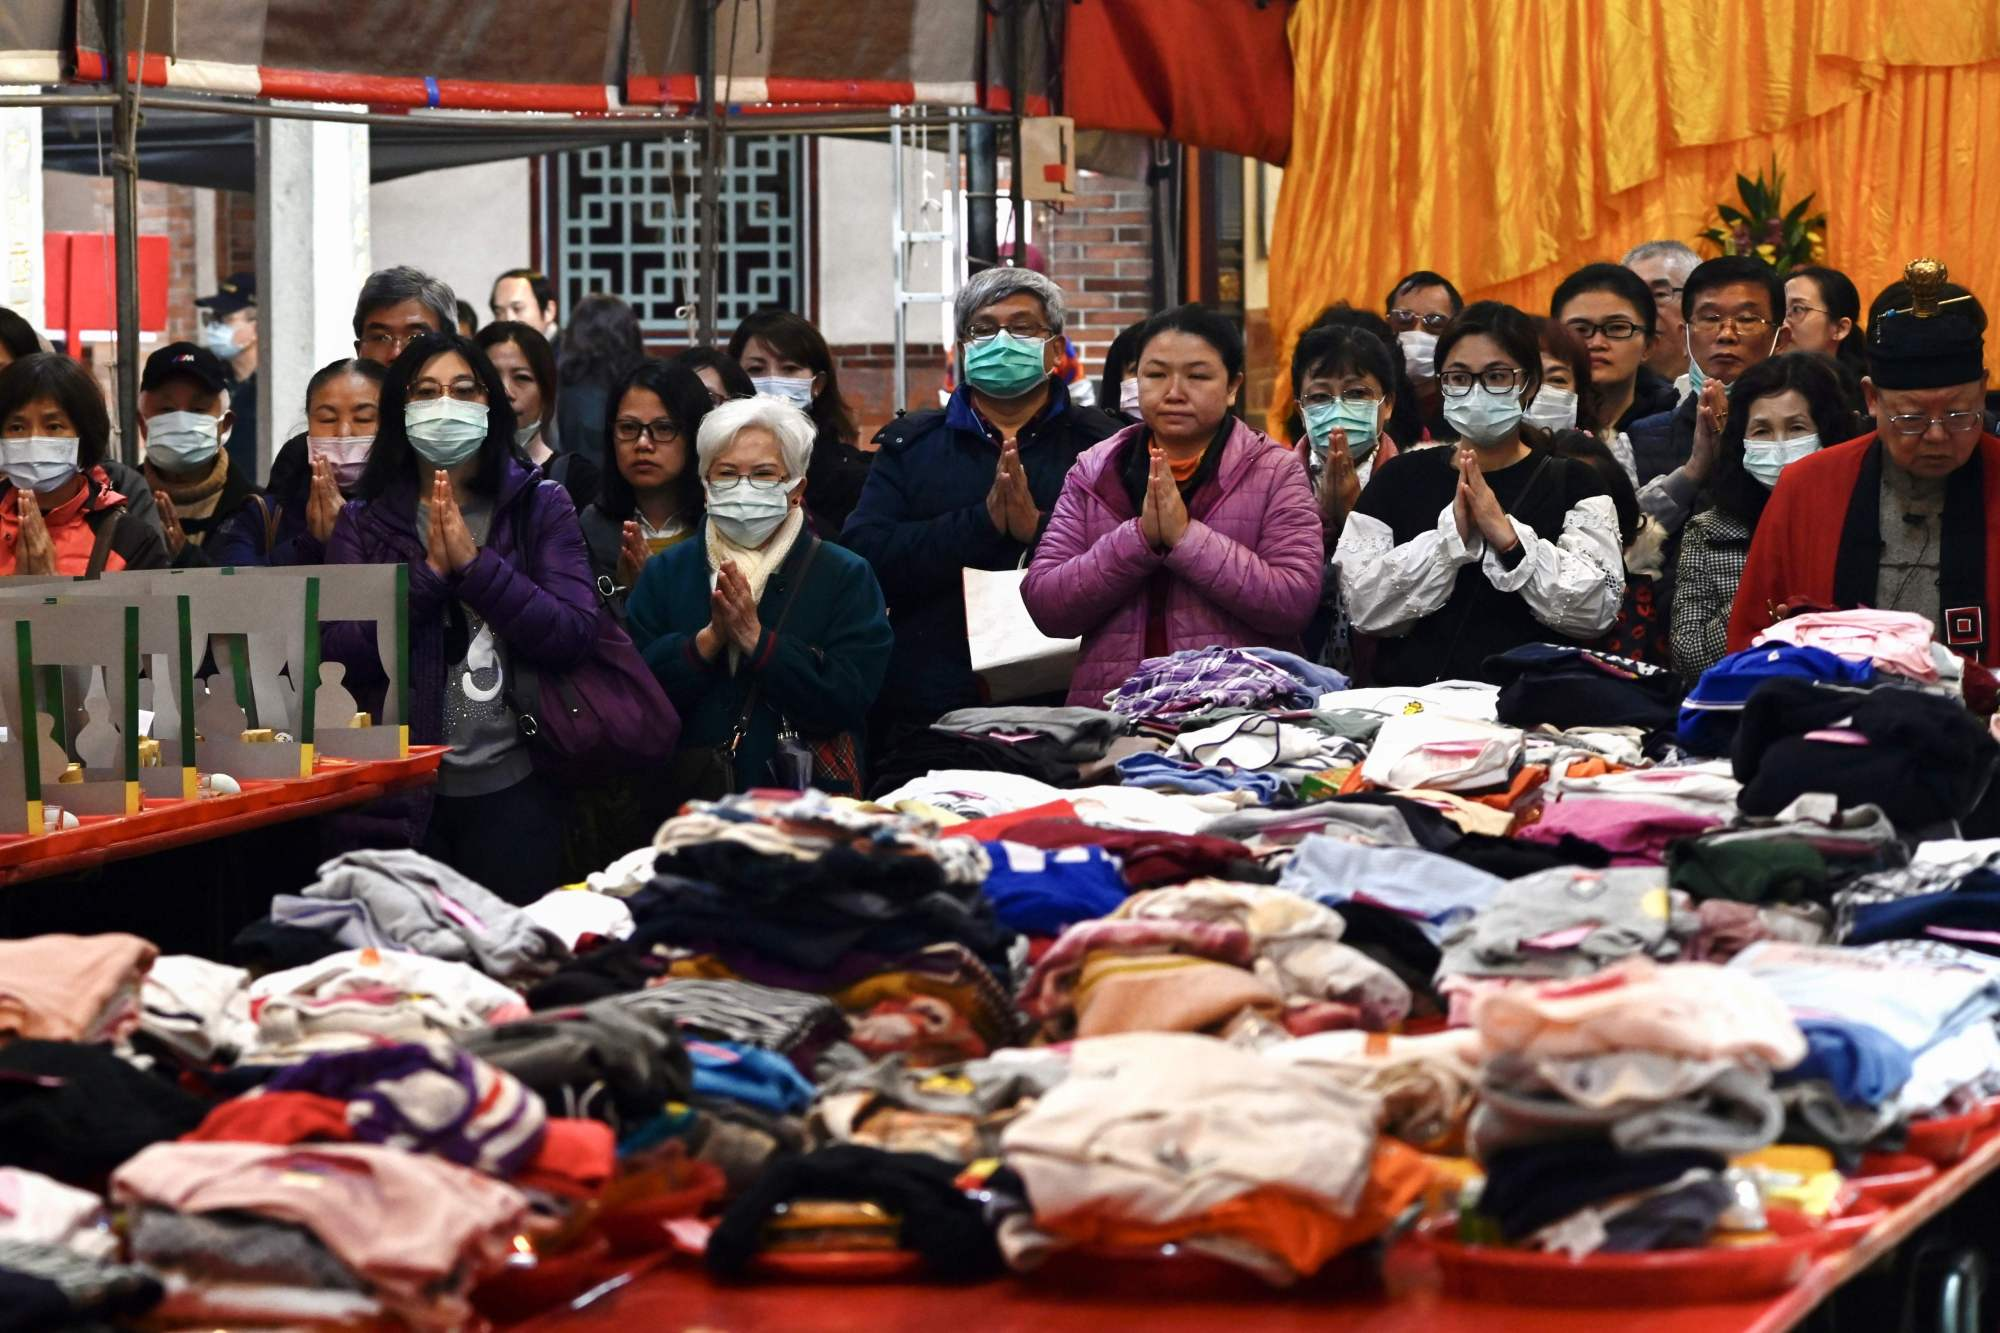 People wearing protective masks pray beside their clothes laid out on a table at a Taoist Baoan temple in Taipei on Tuesday. | AFP-JIJI